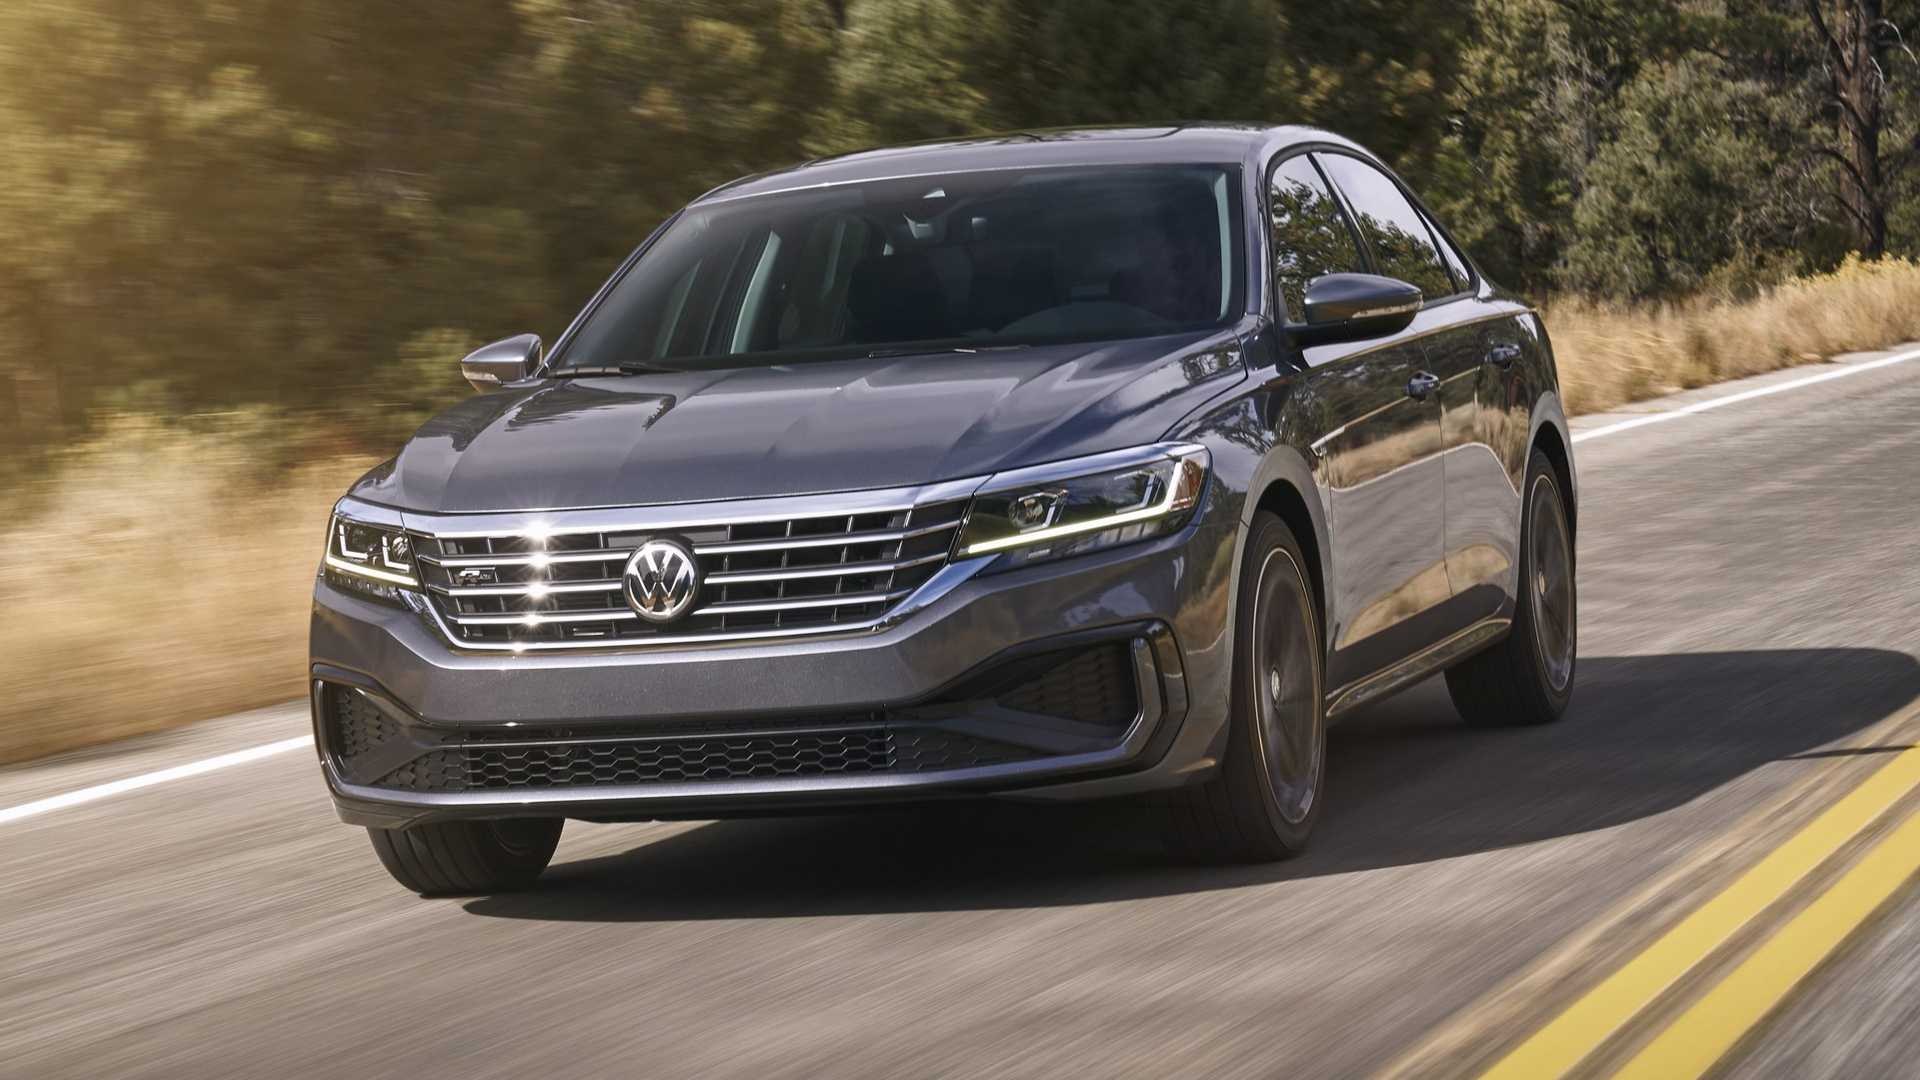 15 A Volkswagen Us Passat 2020 New Model and Performance